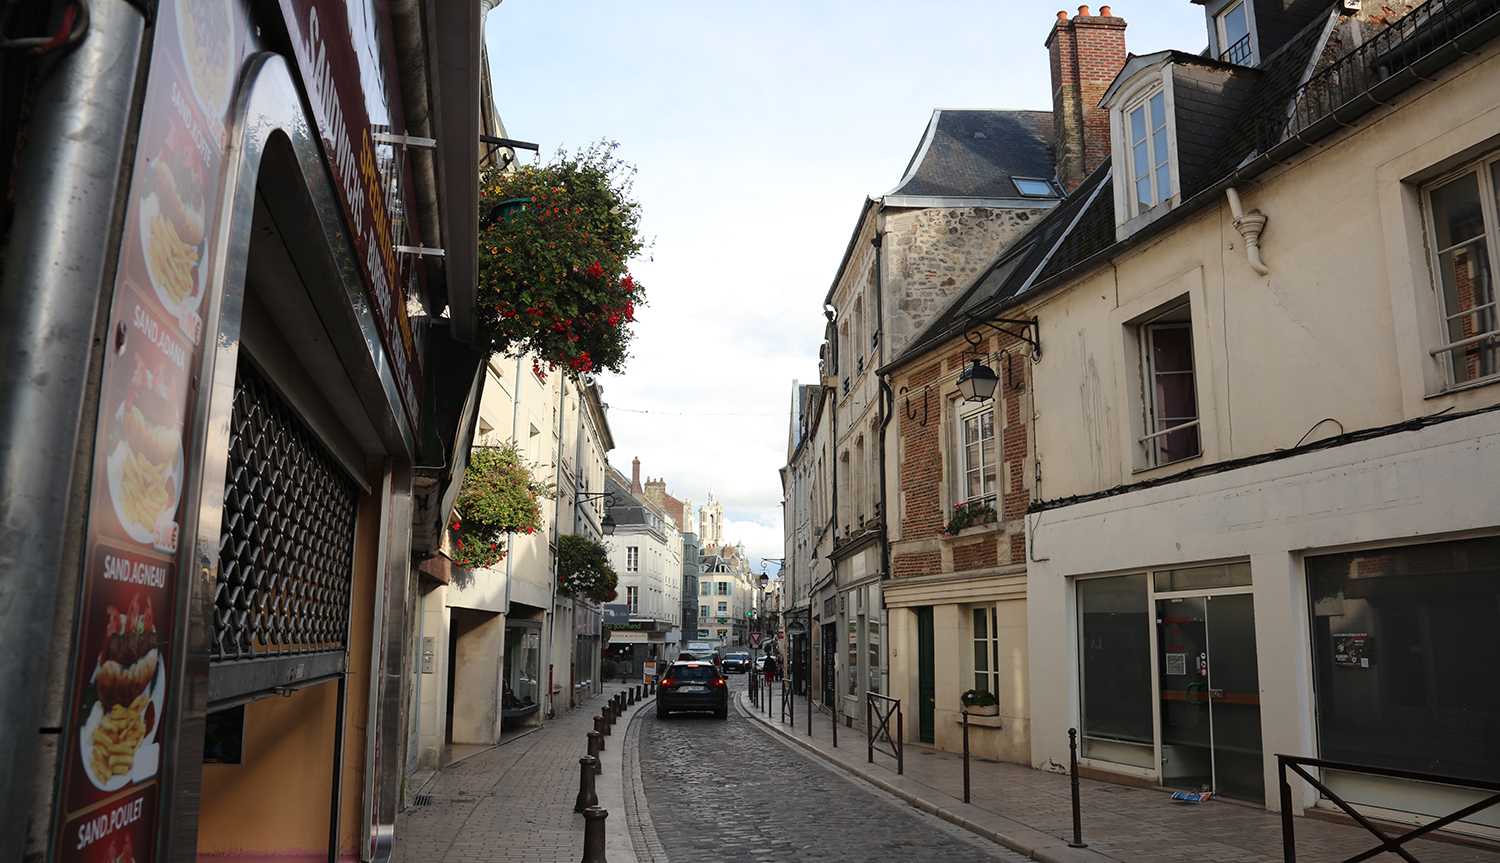 Narrow streets have empty shops, and this is not a 'ville fleurie'